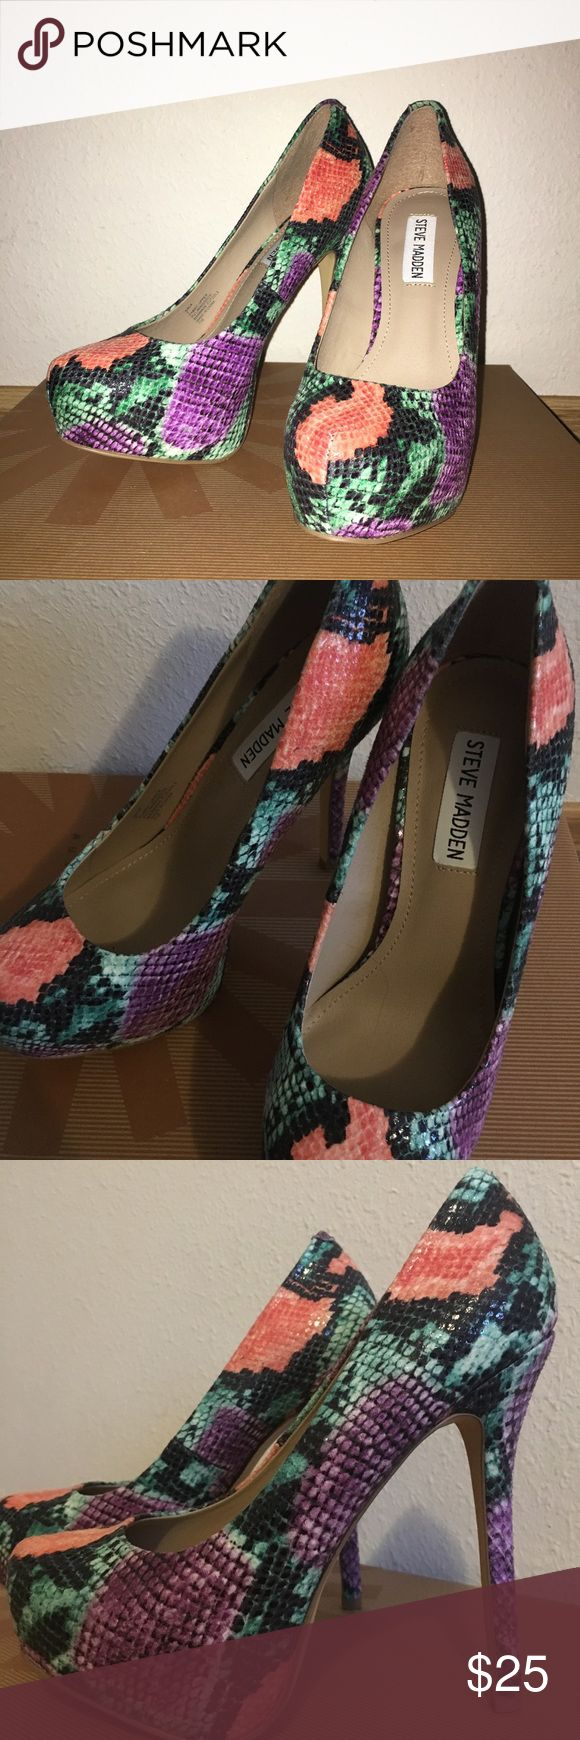 CLEARANCE!!! Steve Madden Snake Print Heels/Pumps Used only twice, these heels are super cute and make a statement. The design is a multi-snake print that's soft to the touch and the heels are 4 inches. In need of a new home. Steve Madden Shoes Heels